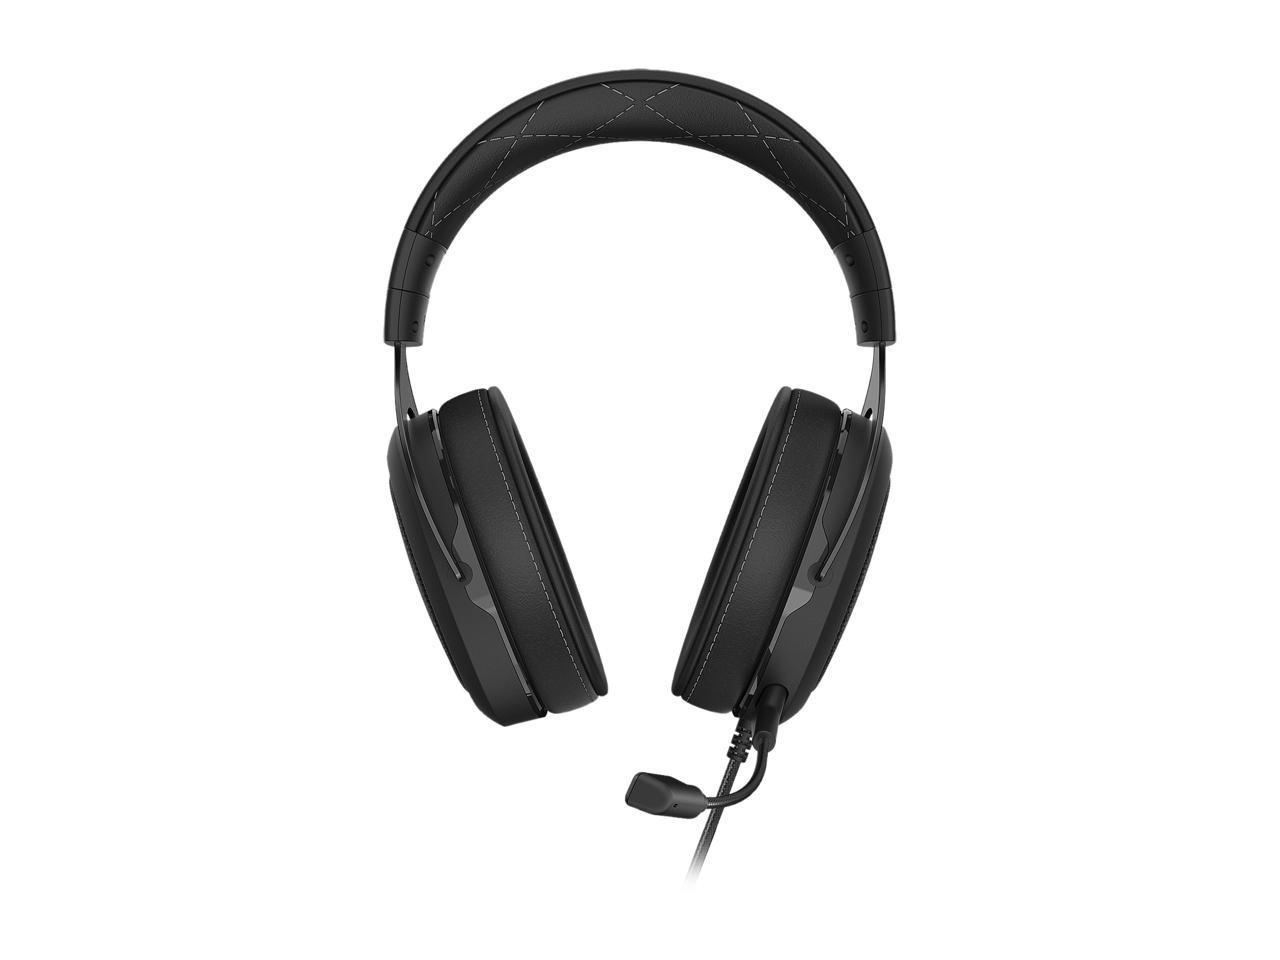 CORSAIR HS60 Pro 3.5mm/USB Connector Circumaural 7.1 Surround Sound Gaming Headset - Carbon